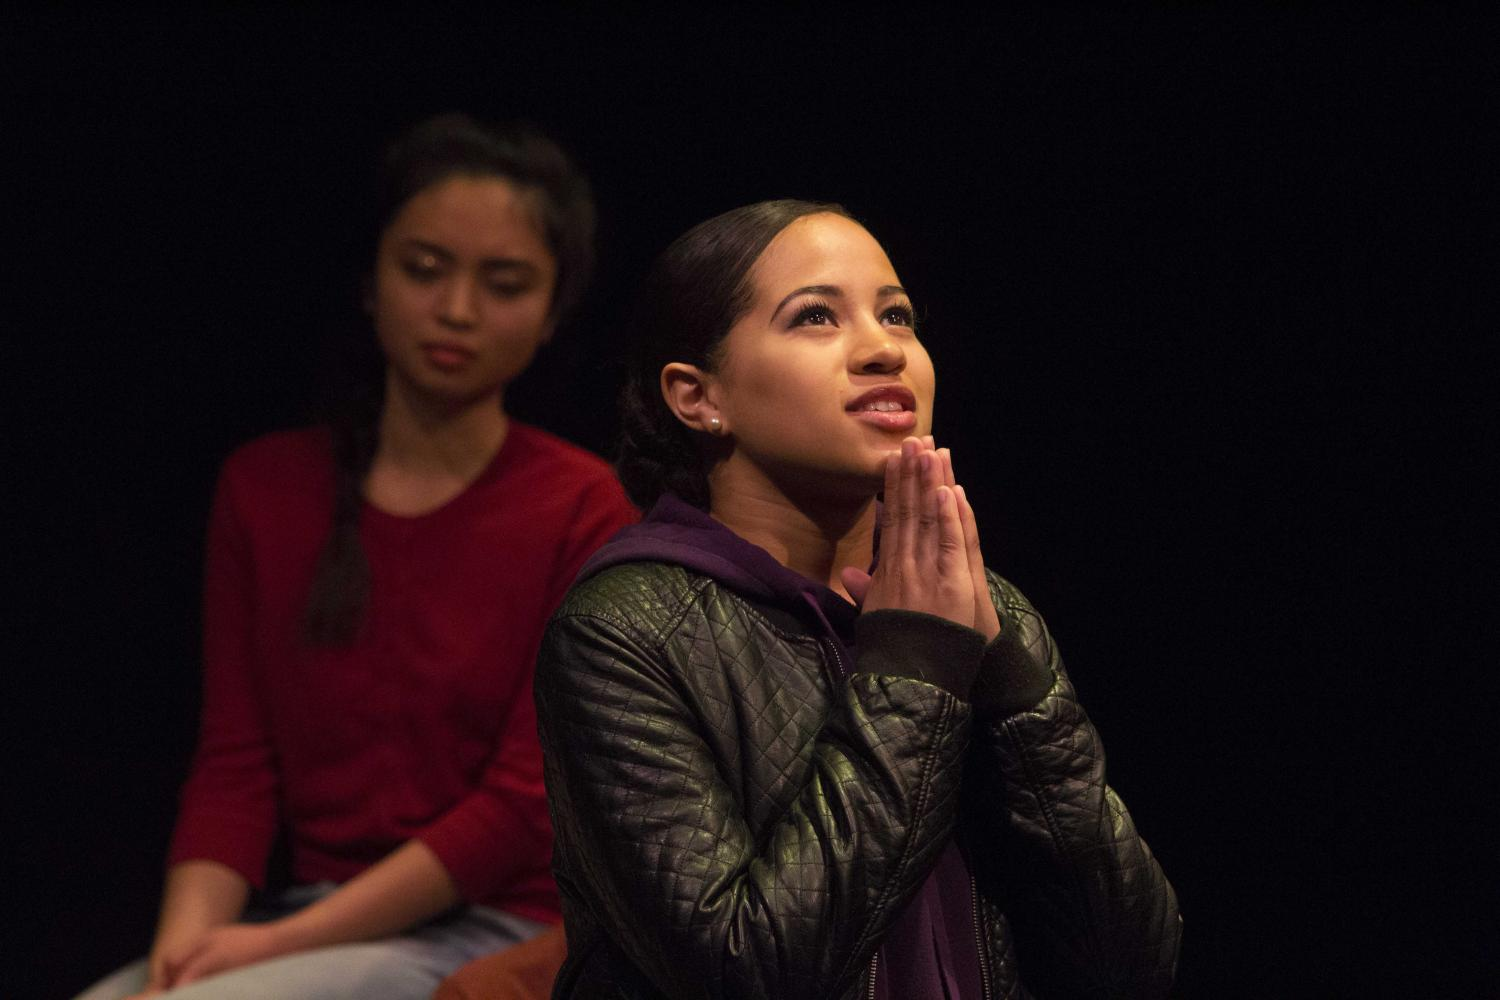 Ashlyn Smith, Voice #8, breaking the silence about an abusive brother in law. Voices of Hope, play by Pamela Lassiter Cathey about sexual assault and its consequences for the victims. On Studio Stage Productions/Performances at Santa Monica College, Calif. On Friday April 28, 2017. (Emeline Moquillon)